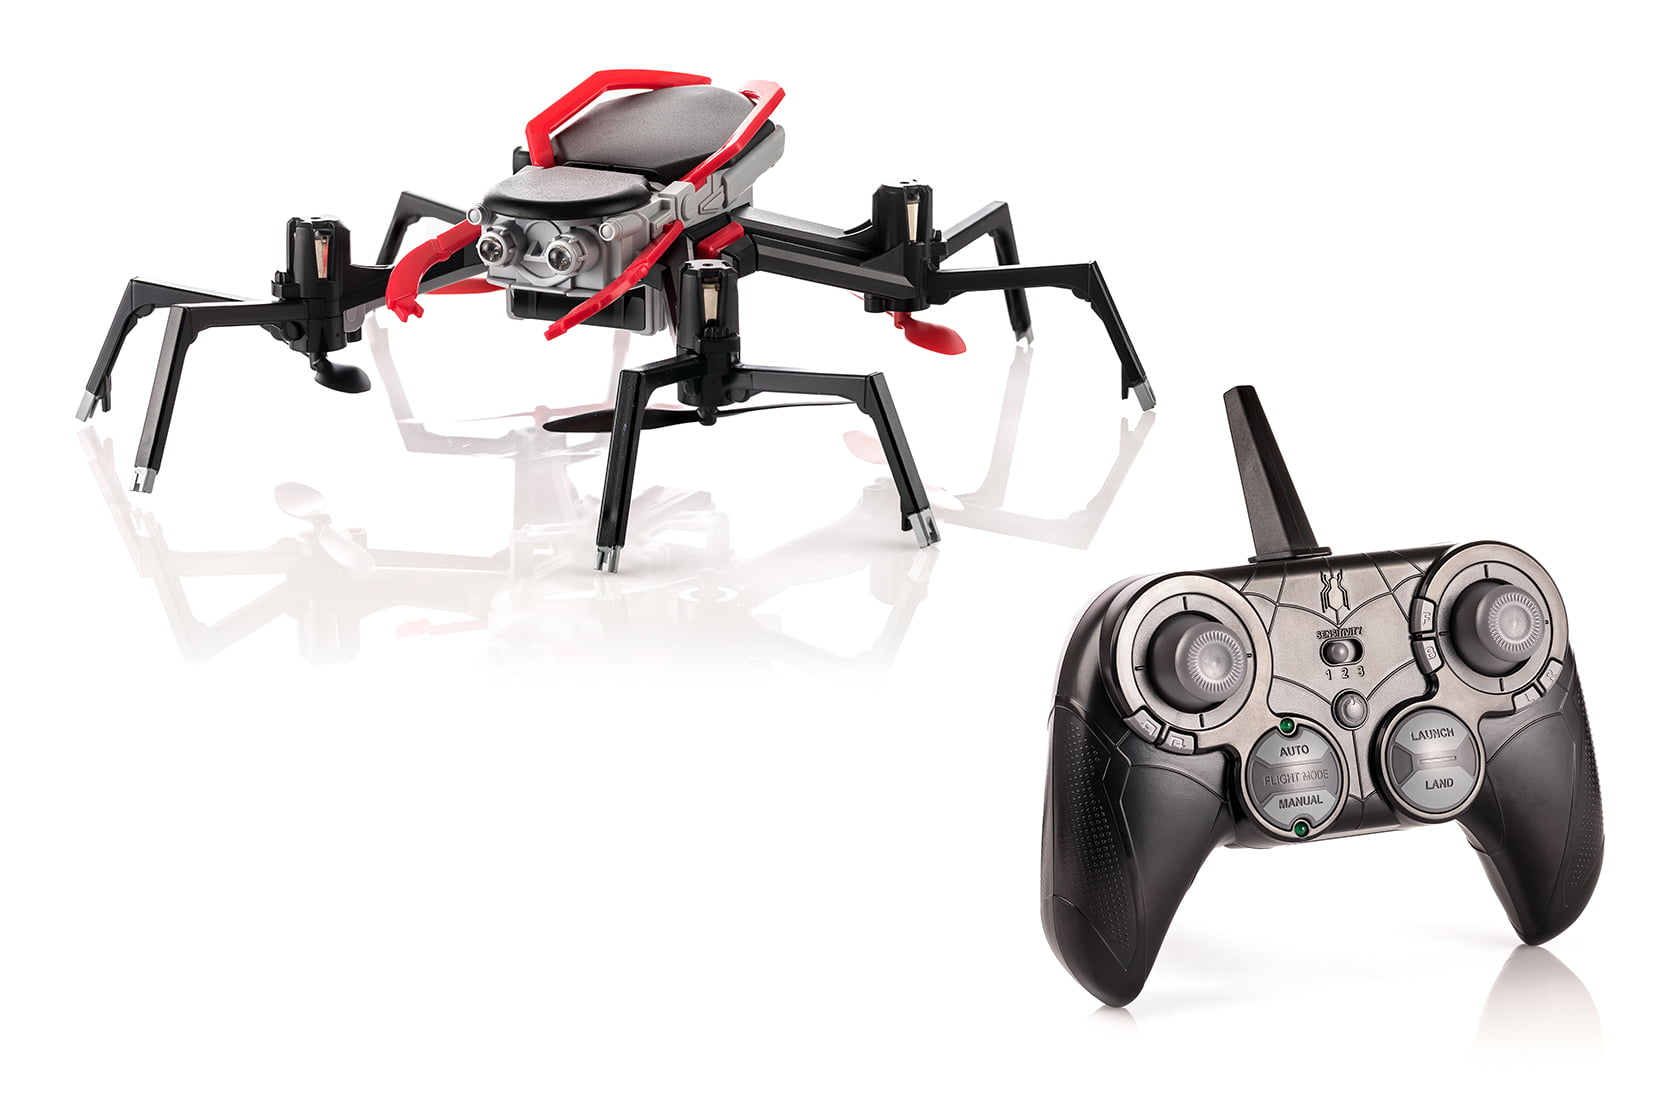 Spider-Drone , The Official Spider-Man Homecoming Movie Edition, Powered by Sky Viper by SKY VIPER